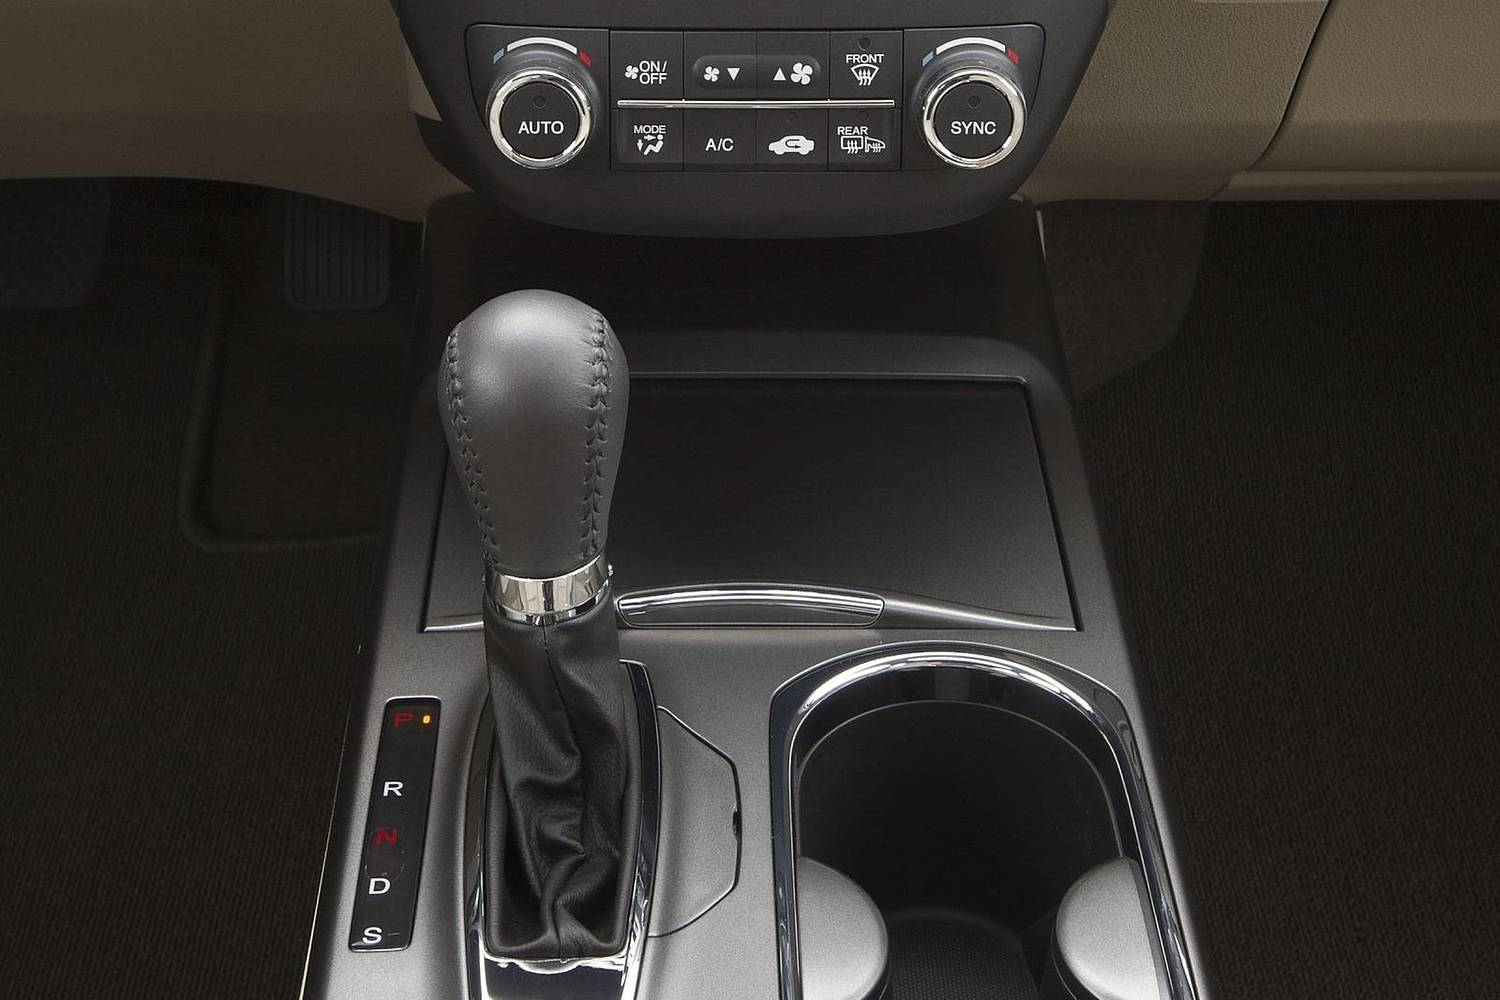 Acura RDX 4dr SUV Shifter (2014 model year shown)